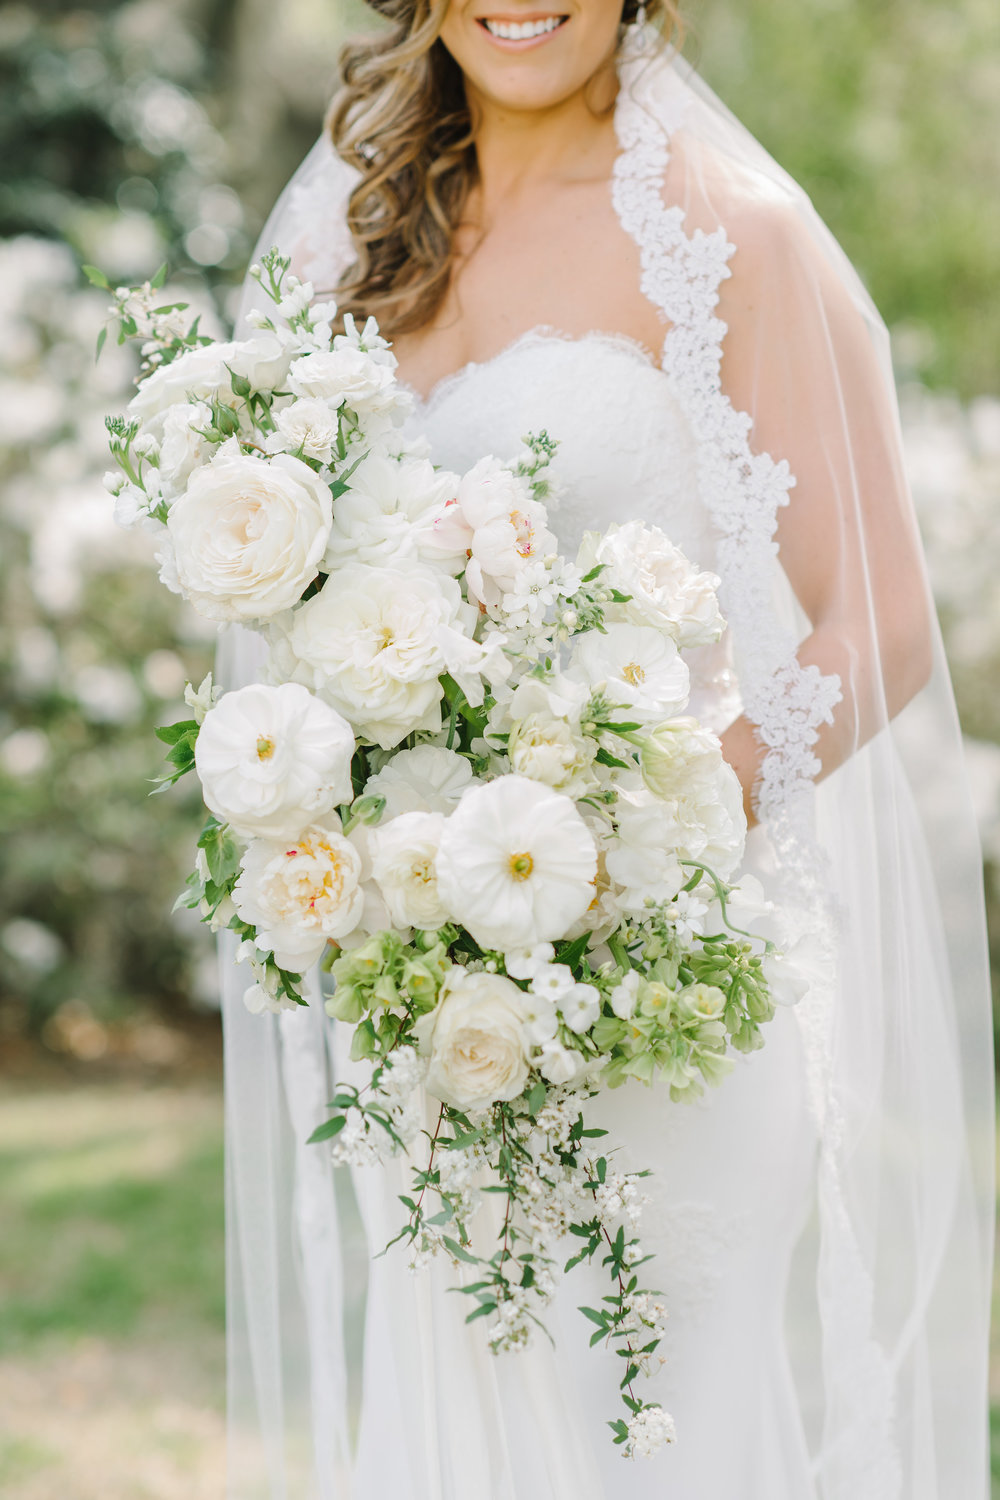 Photo by Aaron and Jillian // Flowers by On A Limb